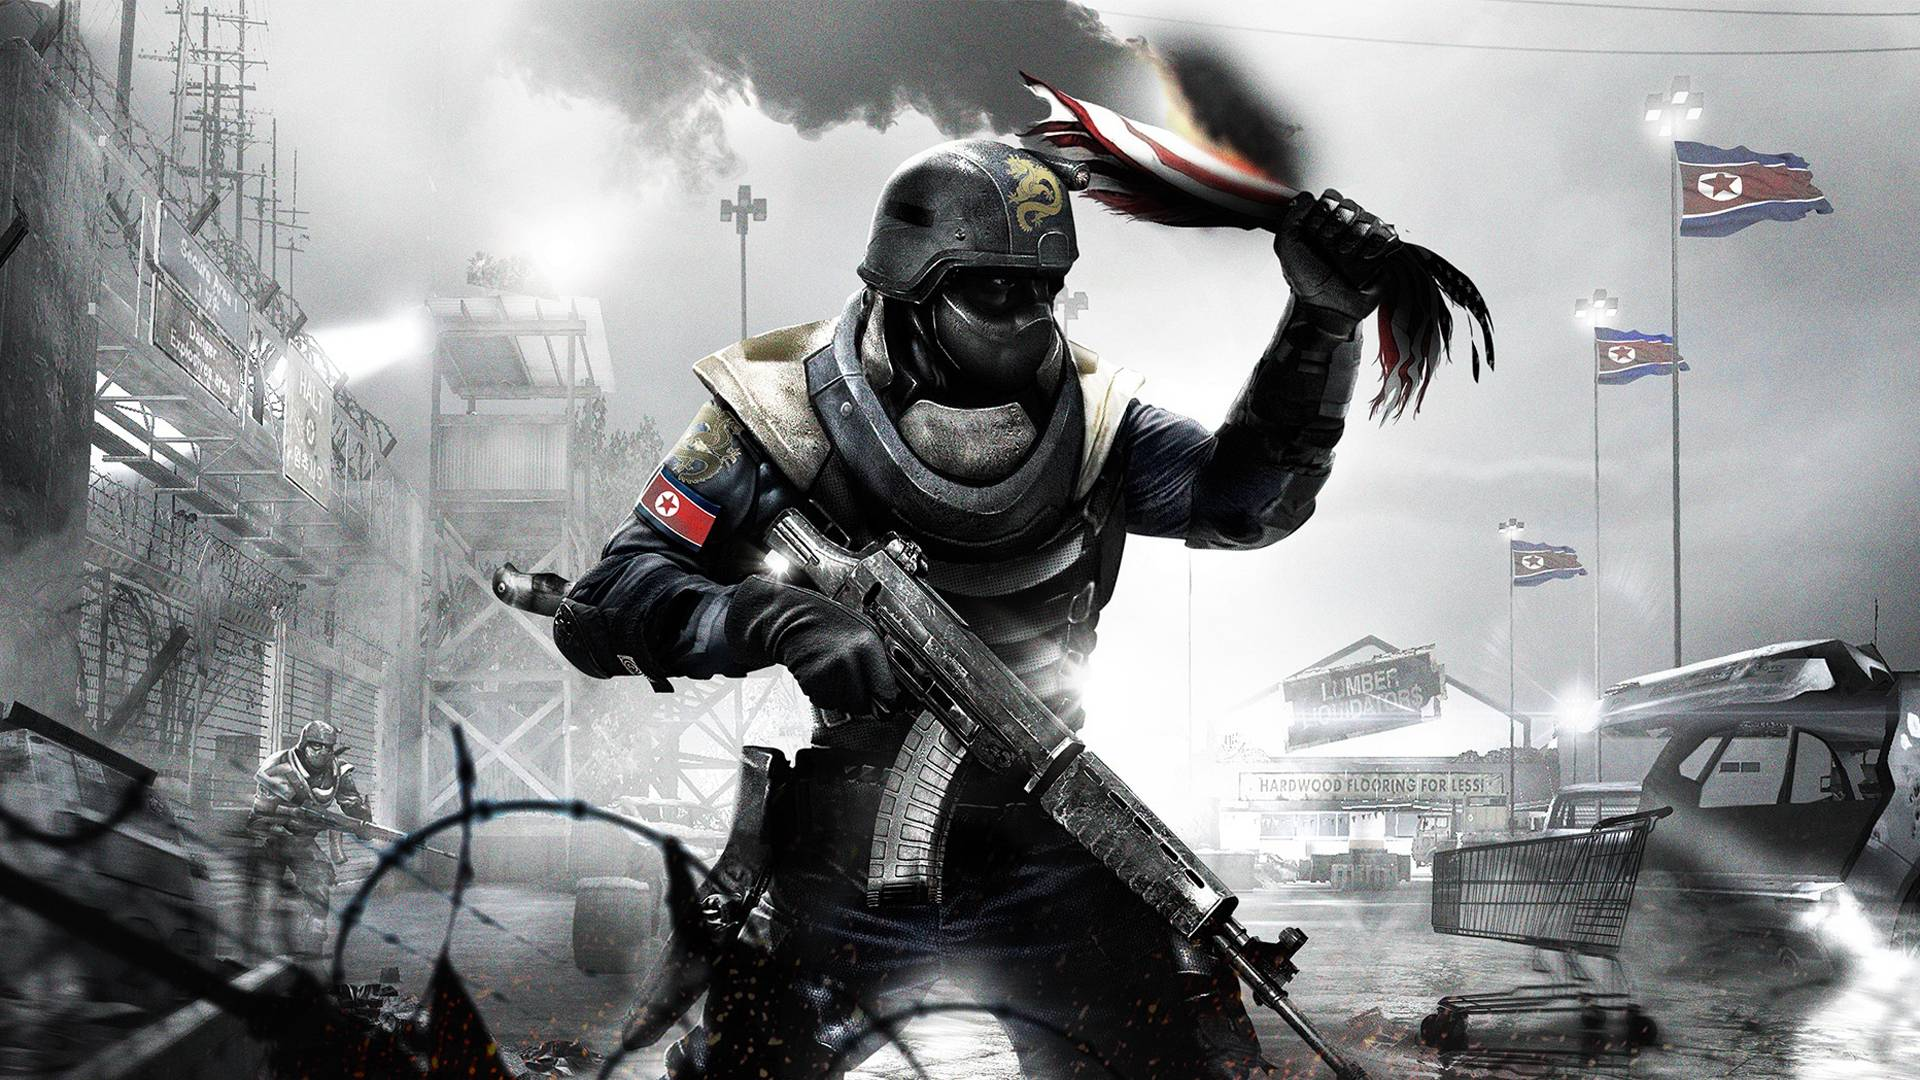 Homefront releases March 15th, 2011 on the PlayStation 3, Xbox 360 and